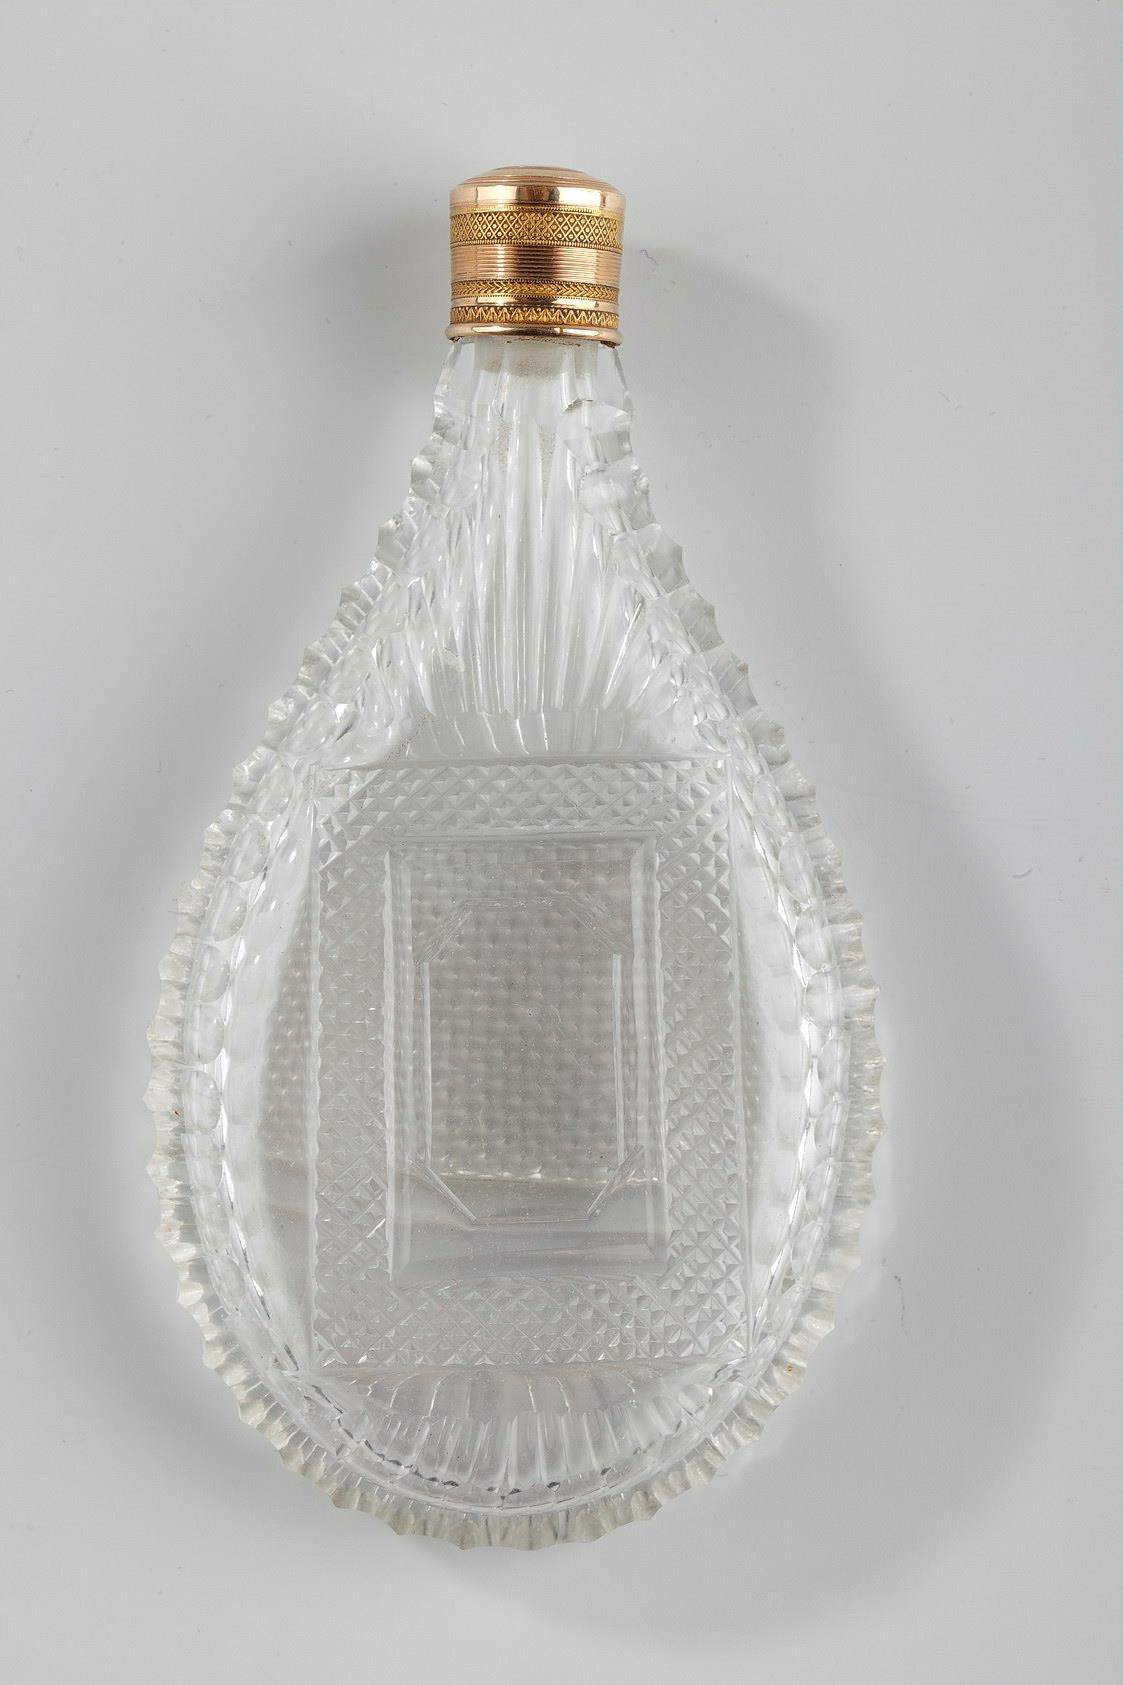 Perfume Flask in Cut Crystal with gold stopper. Mid-19th Century.